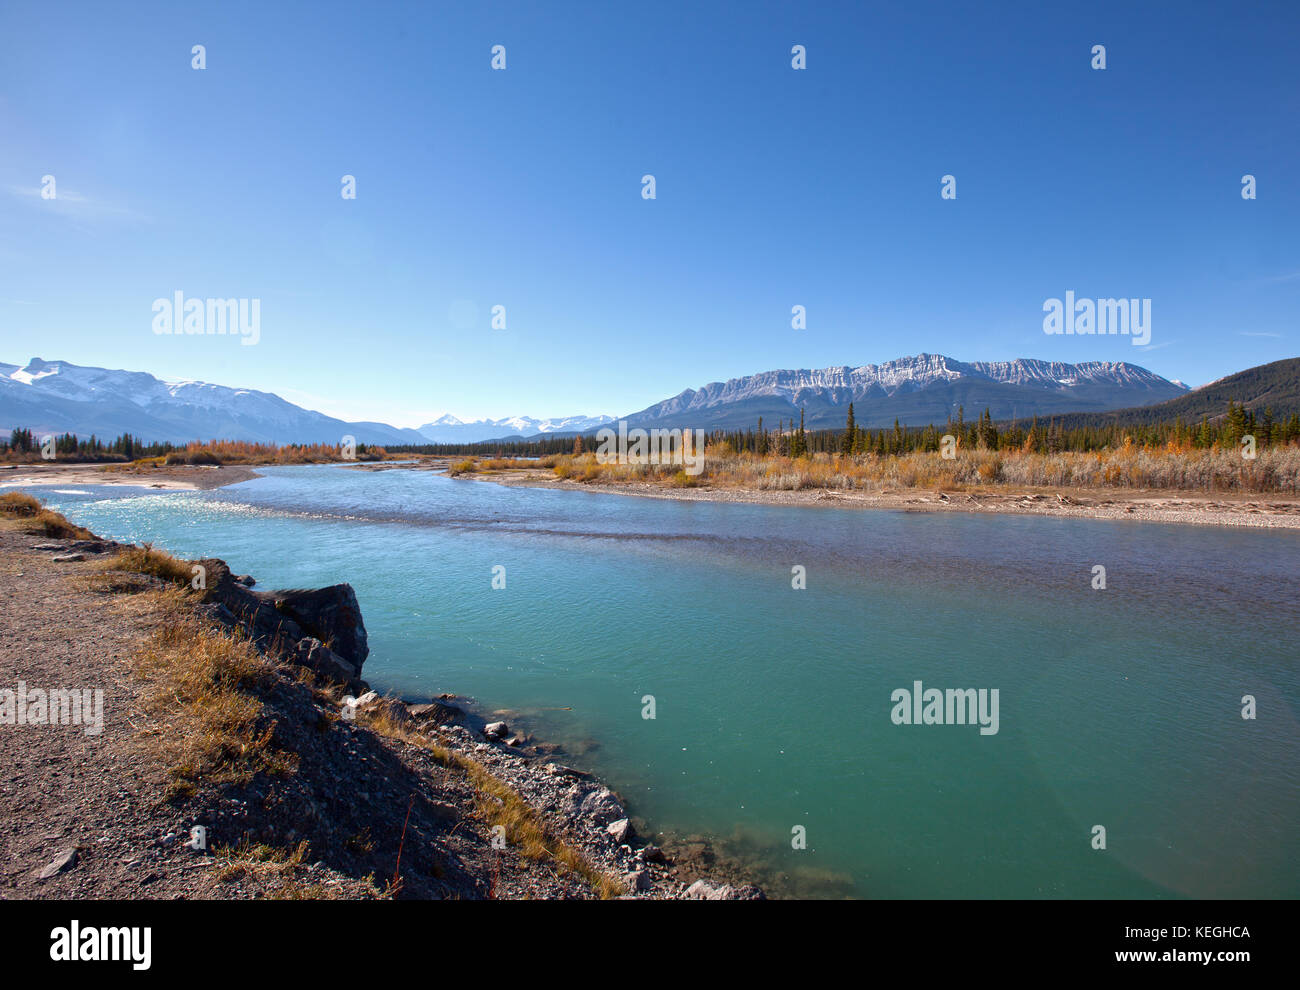 a popular tourist lookoff spot by the Athabasca River in Jasper Park, Alberta with rocky mountain view - Stock Image